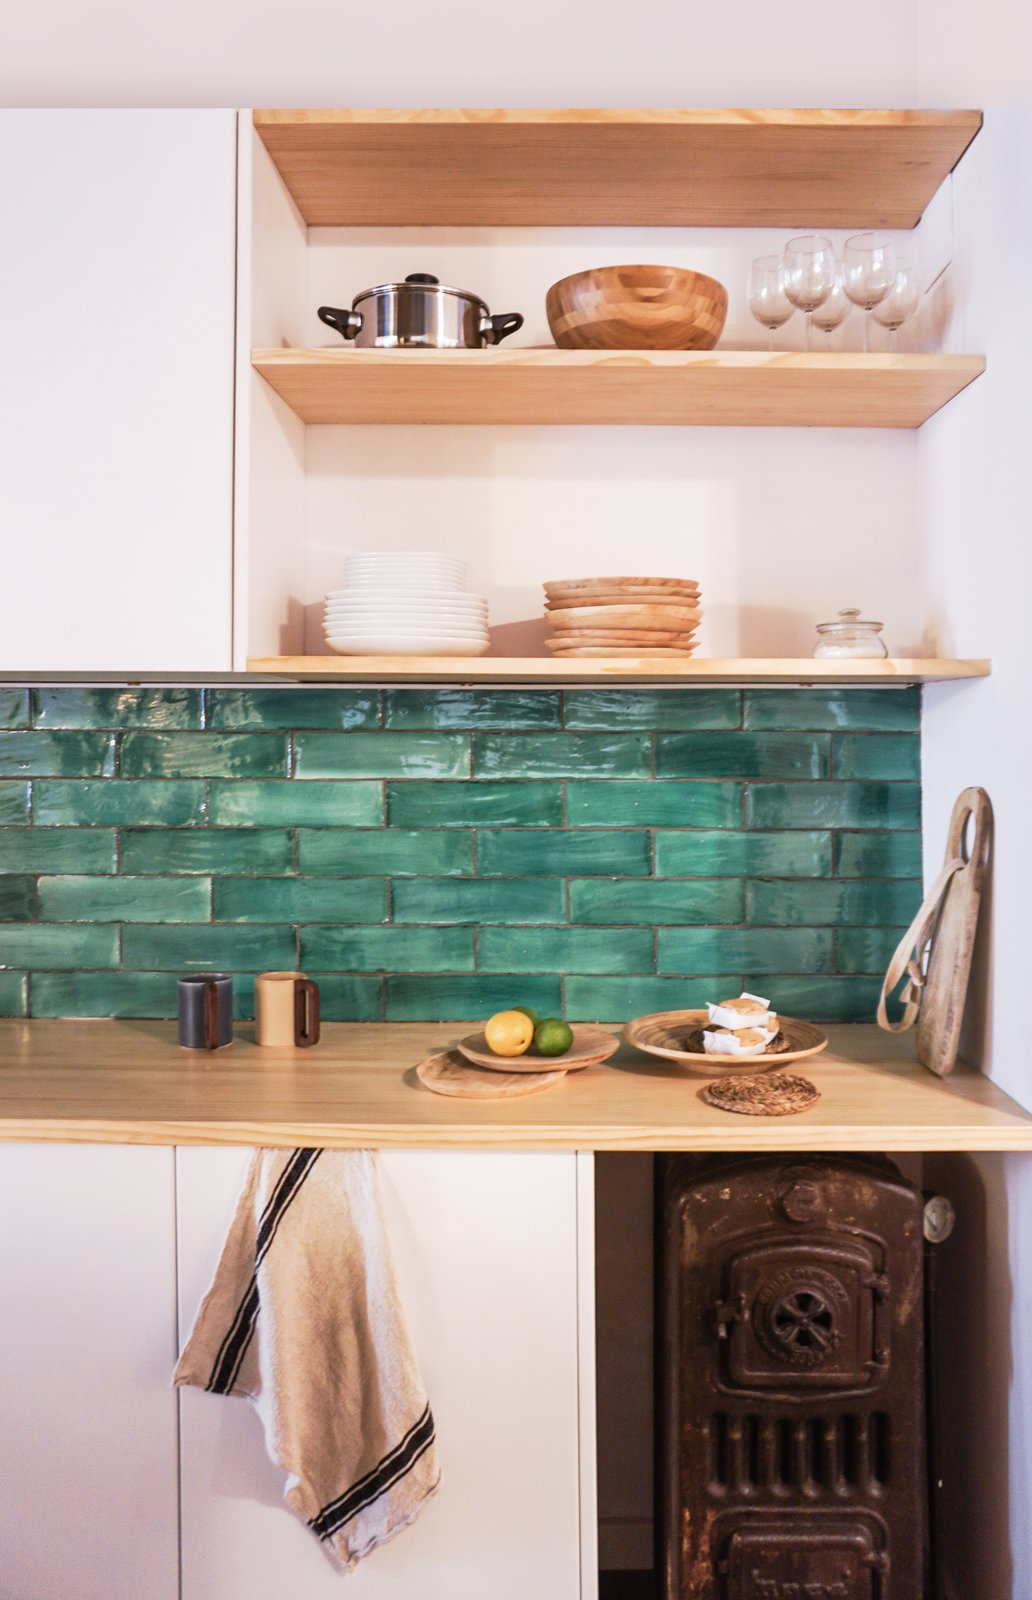 An original boiler the designers discovered during the renovation was kept in the kitchen as decoration. The counter is white pine, and the green tiles were sourced from Can Benito a studio in Mallorca.